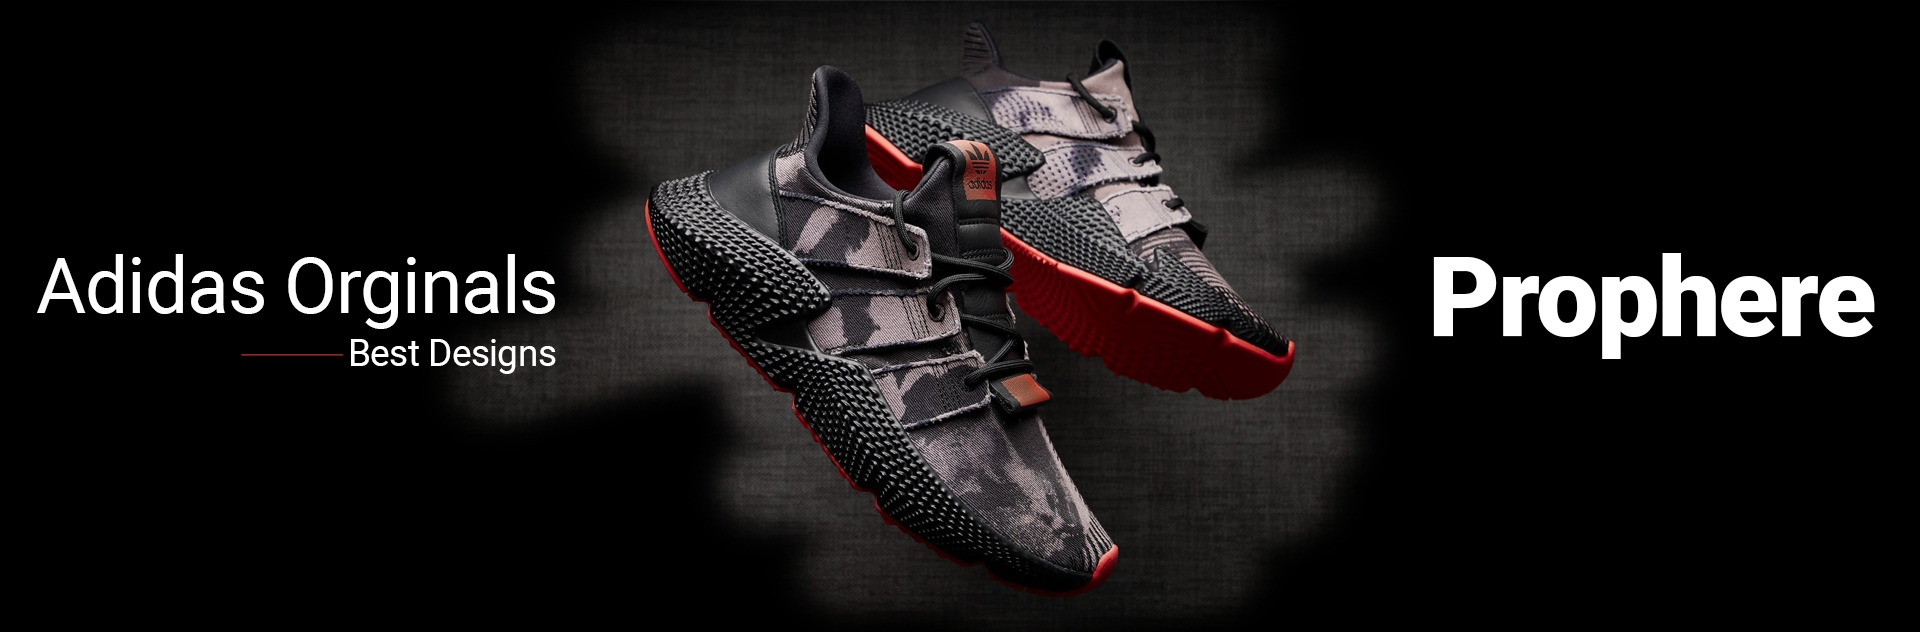 Giày Adidas Prophere